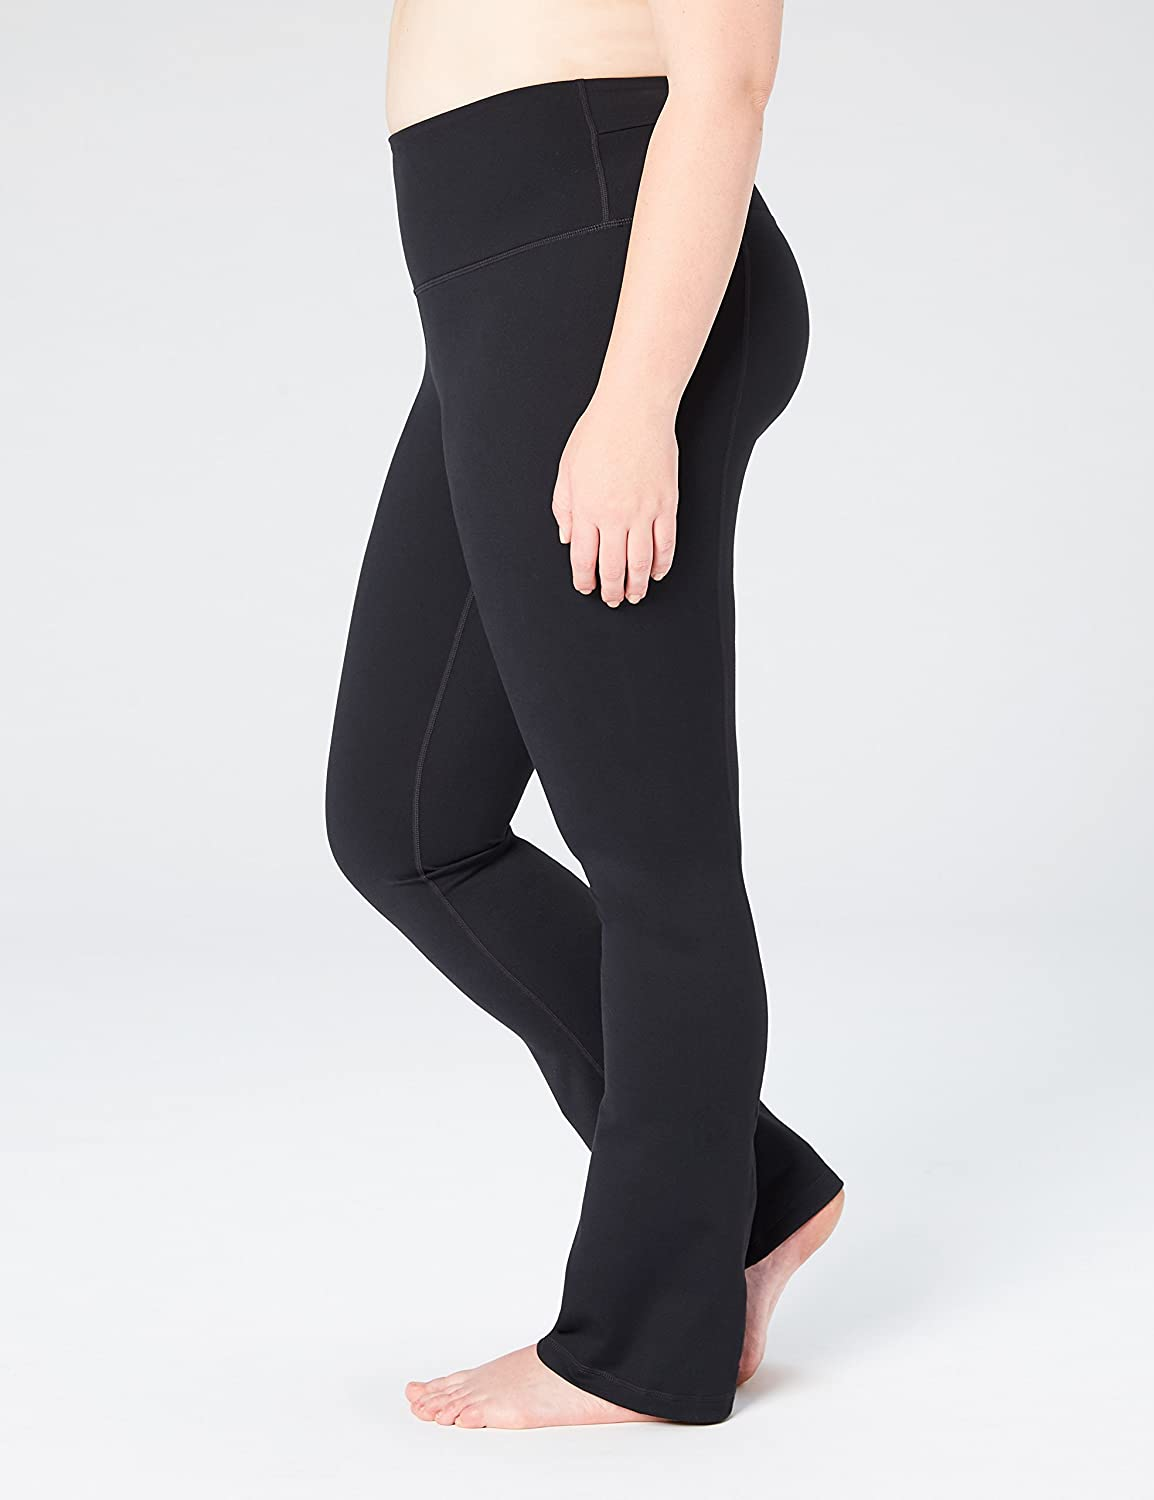 Brand - Core 10 Women's (XS-3X) 'Build Your Own' Yoga Straight Pant, Inseams Available: Clothing